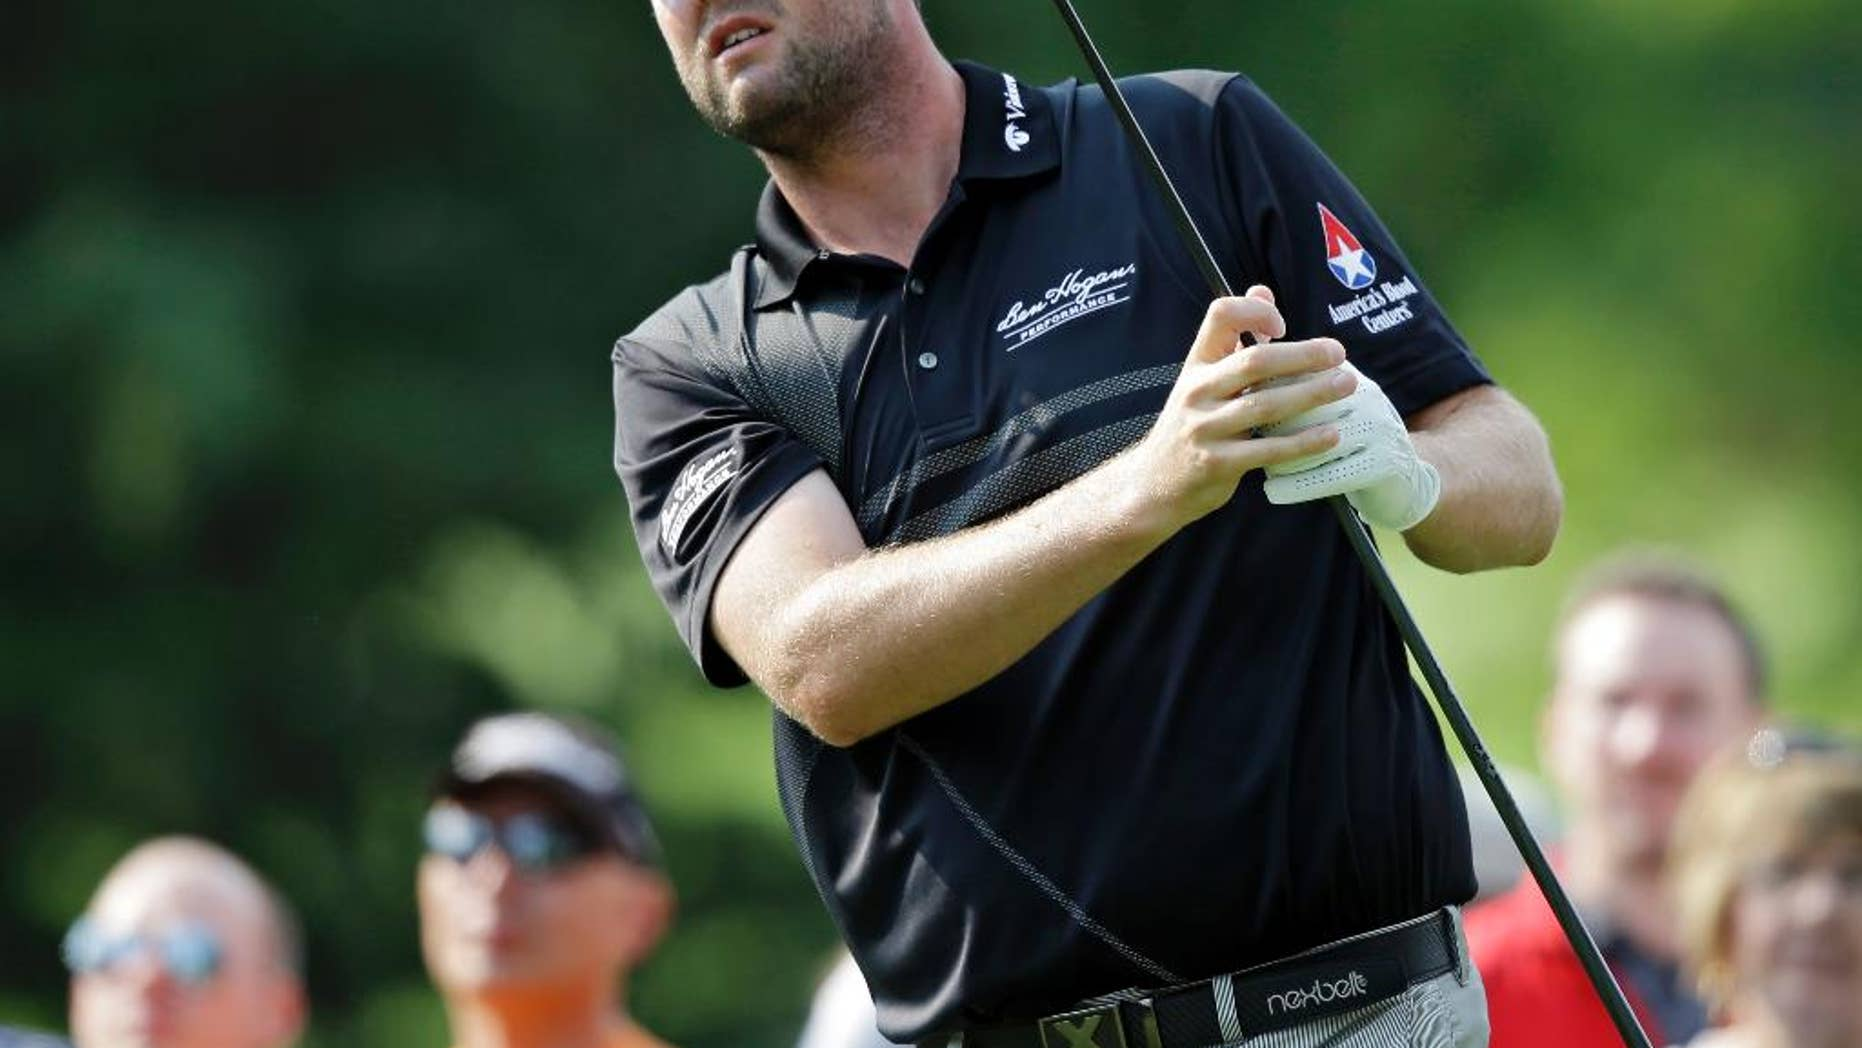 FILE - In this Aug. 2, 2014, file photo, Marc Leishman watches his drive on the third hole during the third round of the Bridgestone Invitational golf tournament at Firestone Country Club in Akron, Ohio. Lieshman, who has missed recent Tour events for family reasons, returns this week at the Zurich Classic in New Orleans. (AP Photo/Mark Duncan, File)